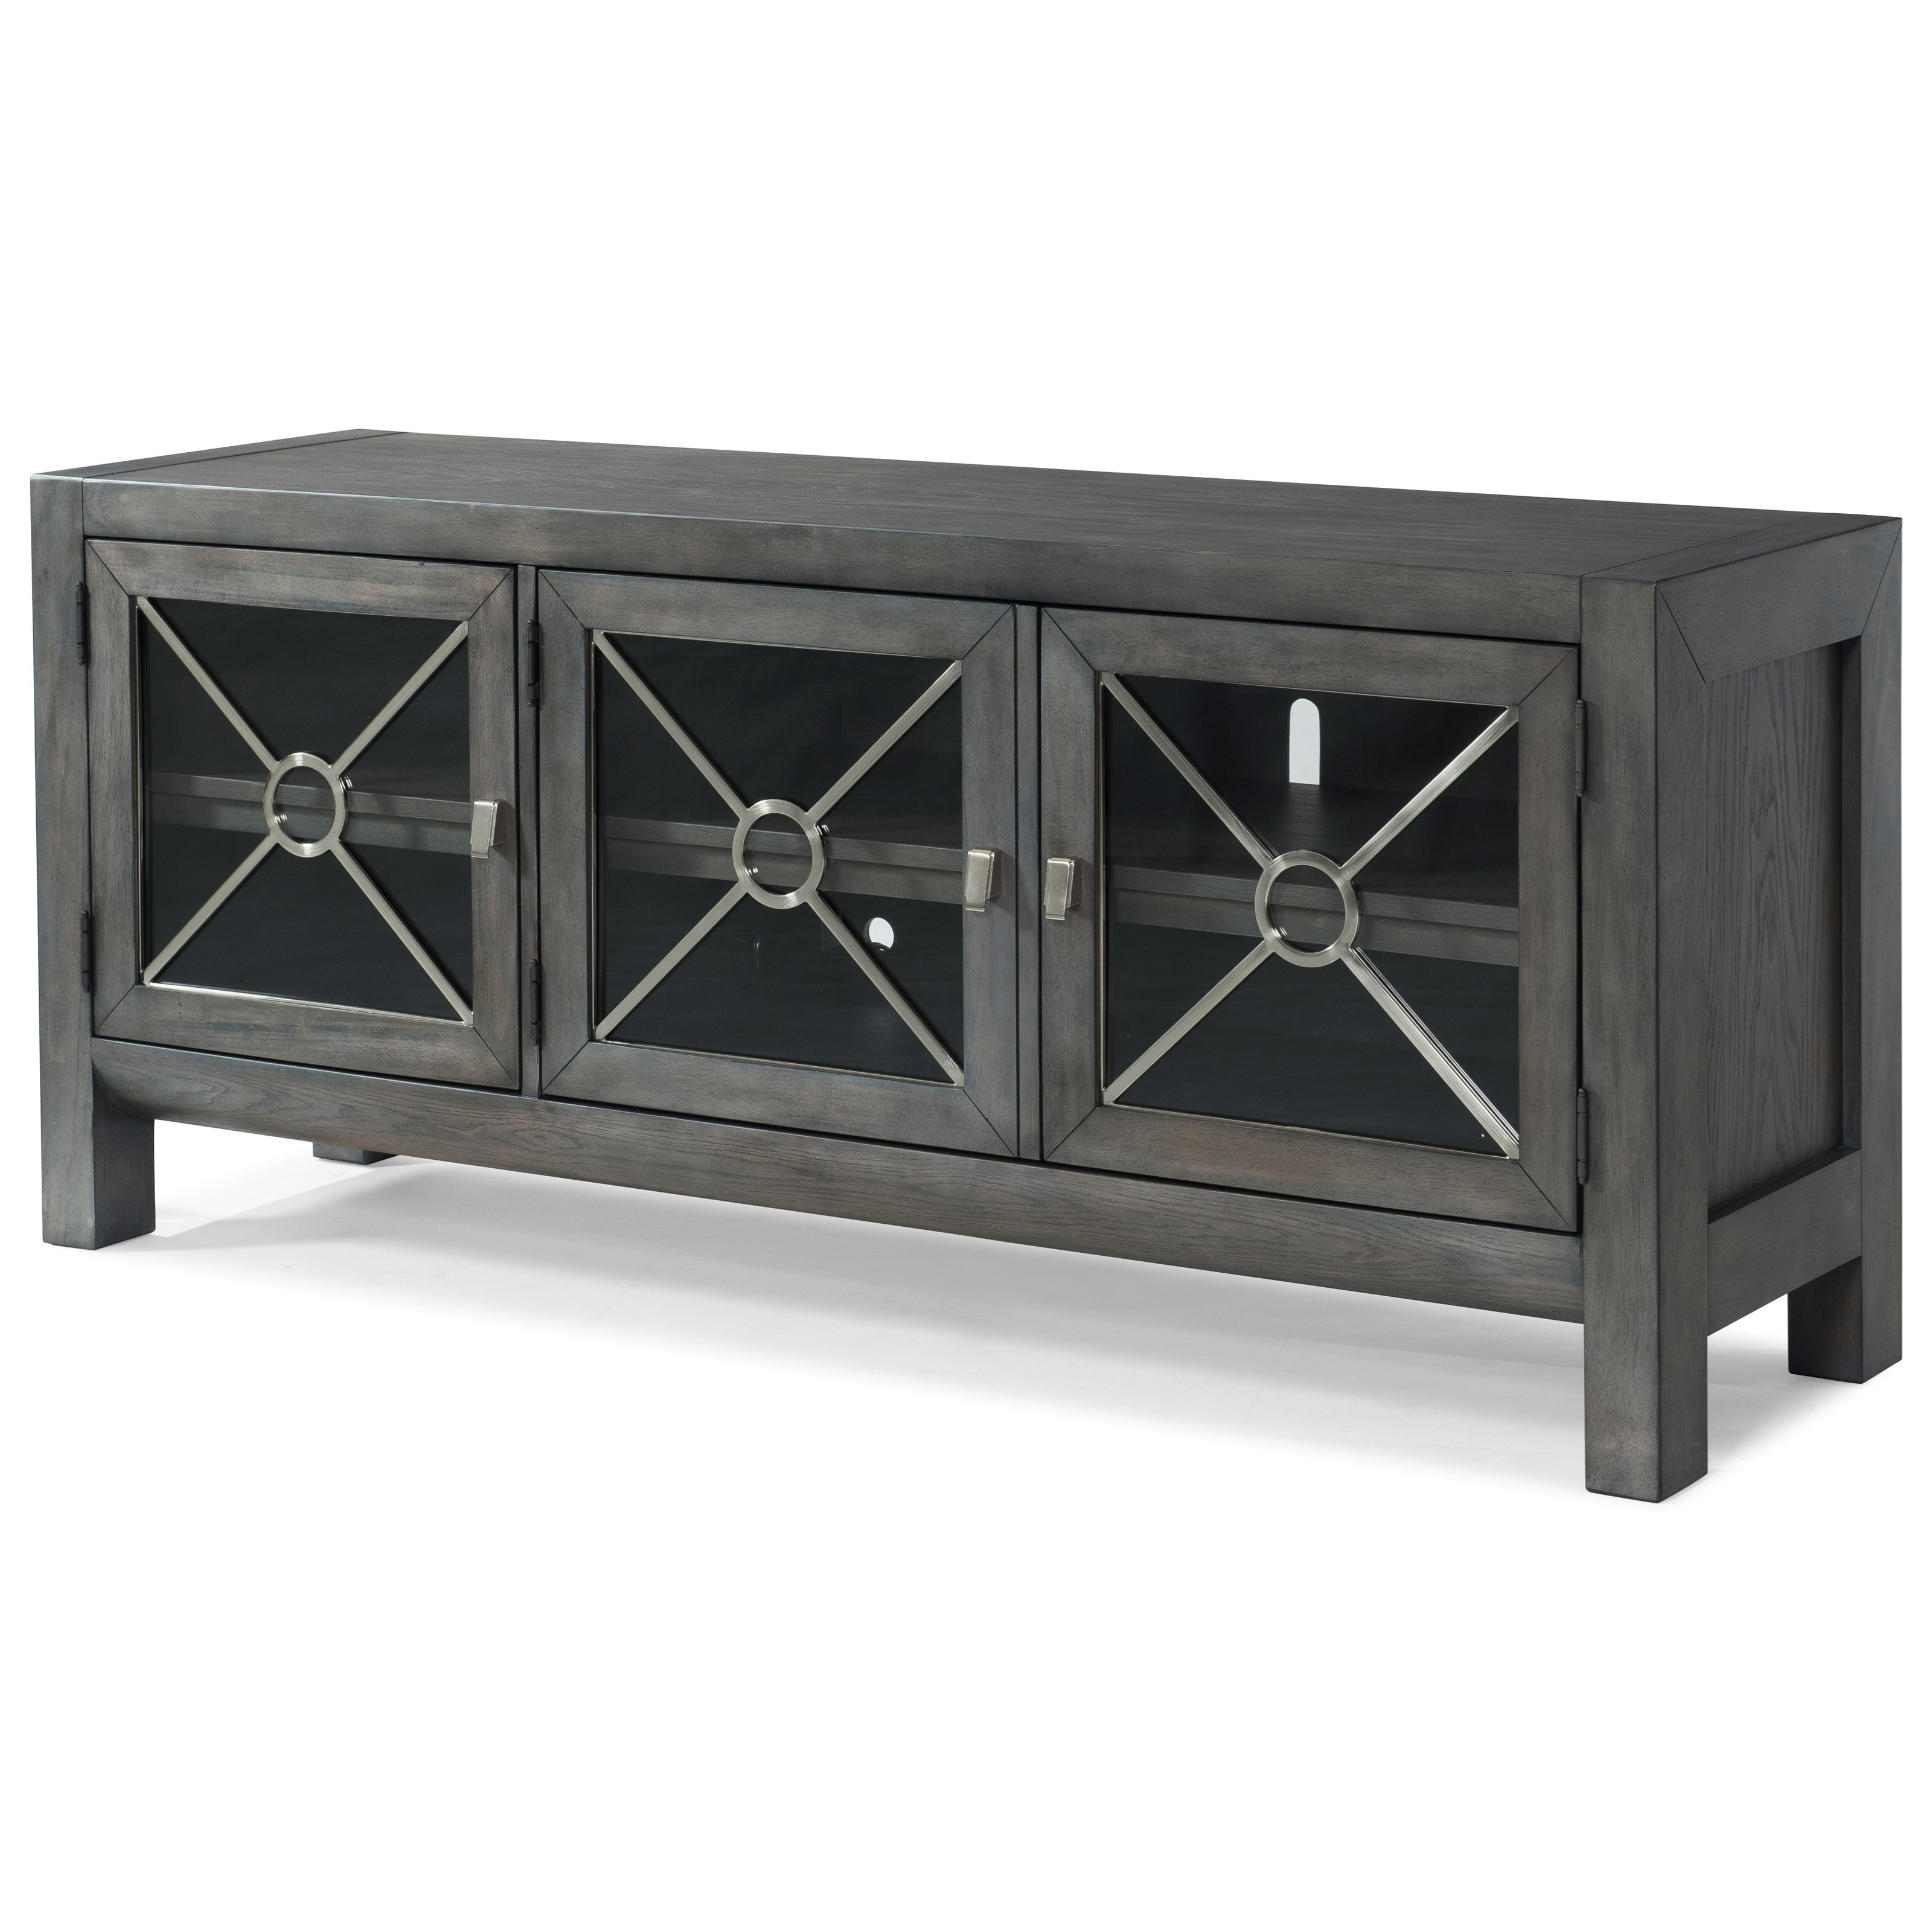 "Trisha Yearwood Home Collection by Klaussner Music City ""Real Live Woman"" TV Stand - Item Number: 925-070 CONS"